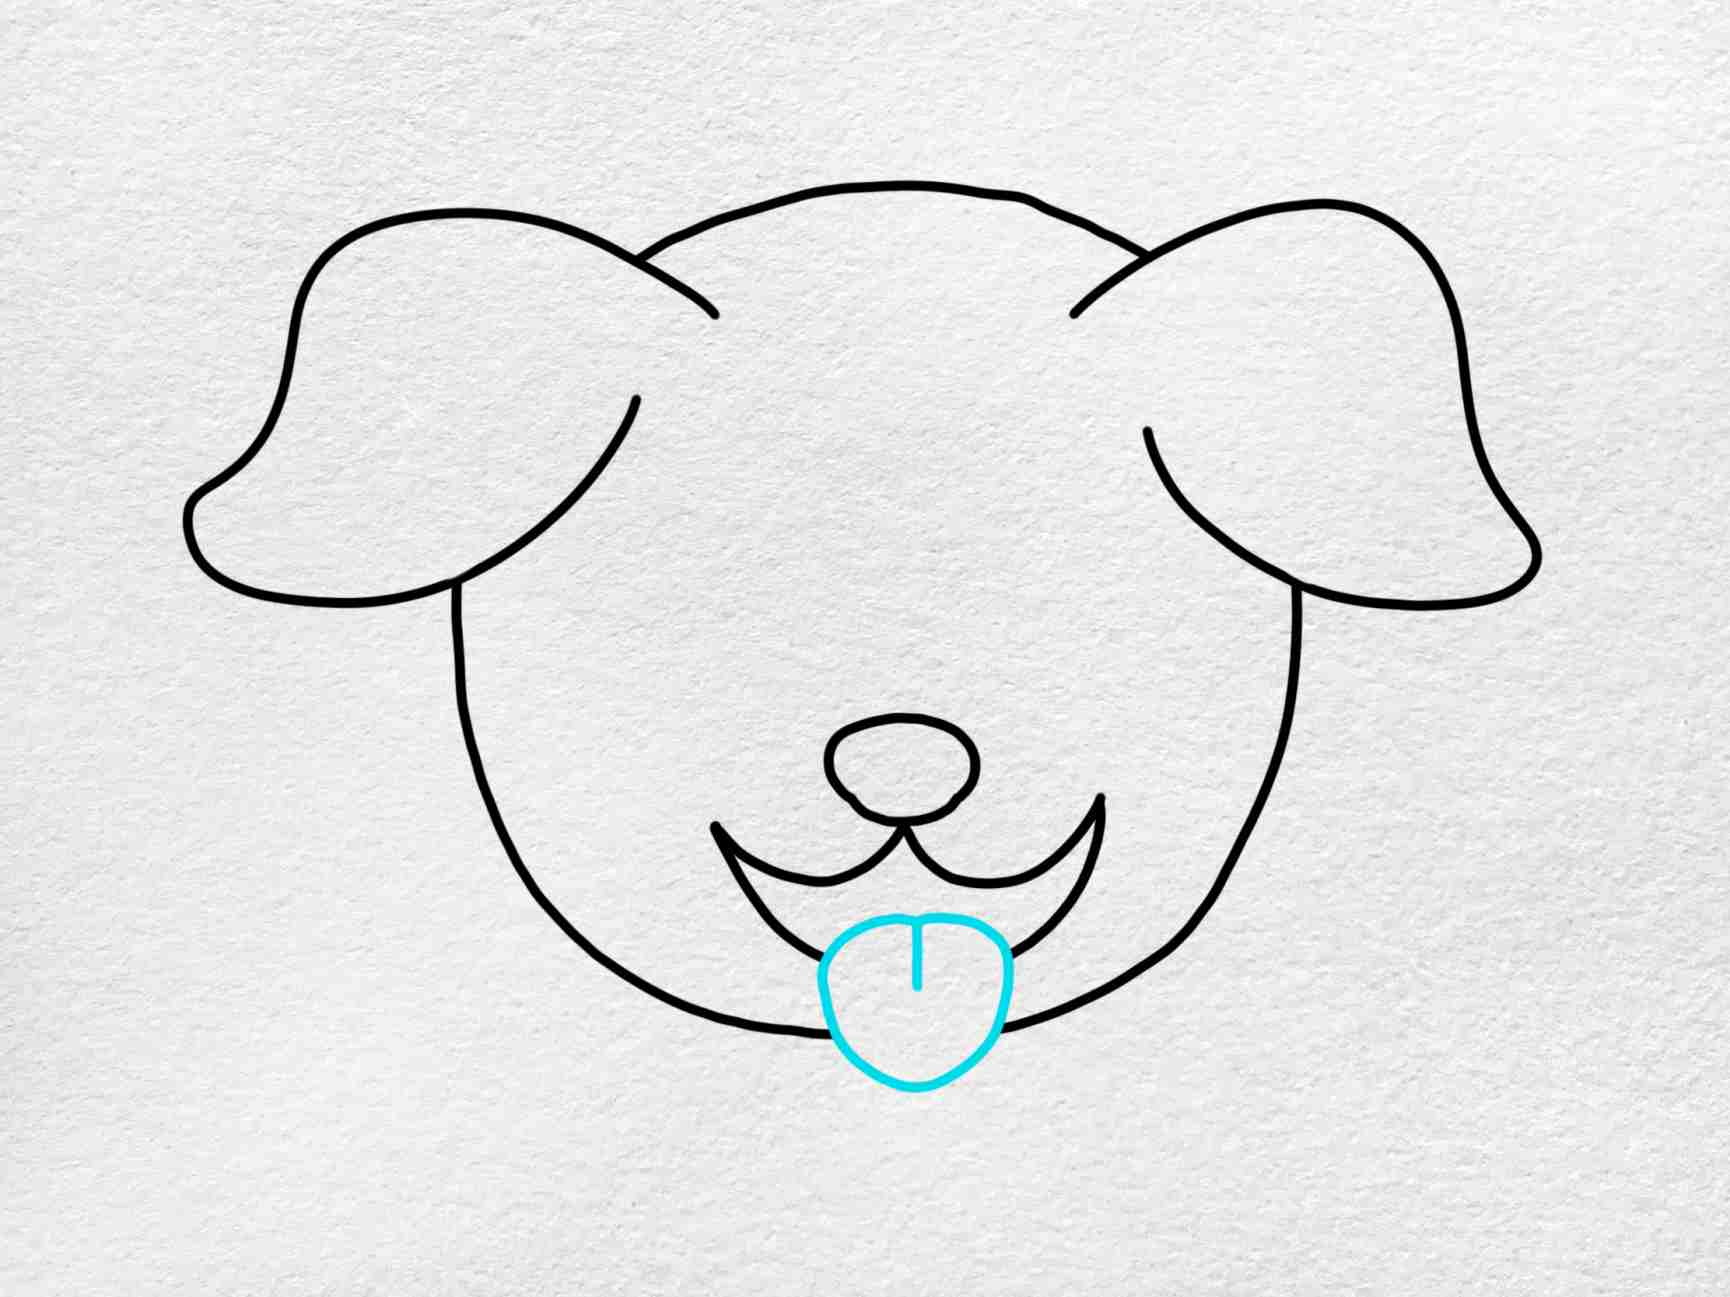 How To Draw A Dog Face: Step 4